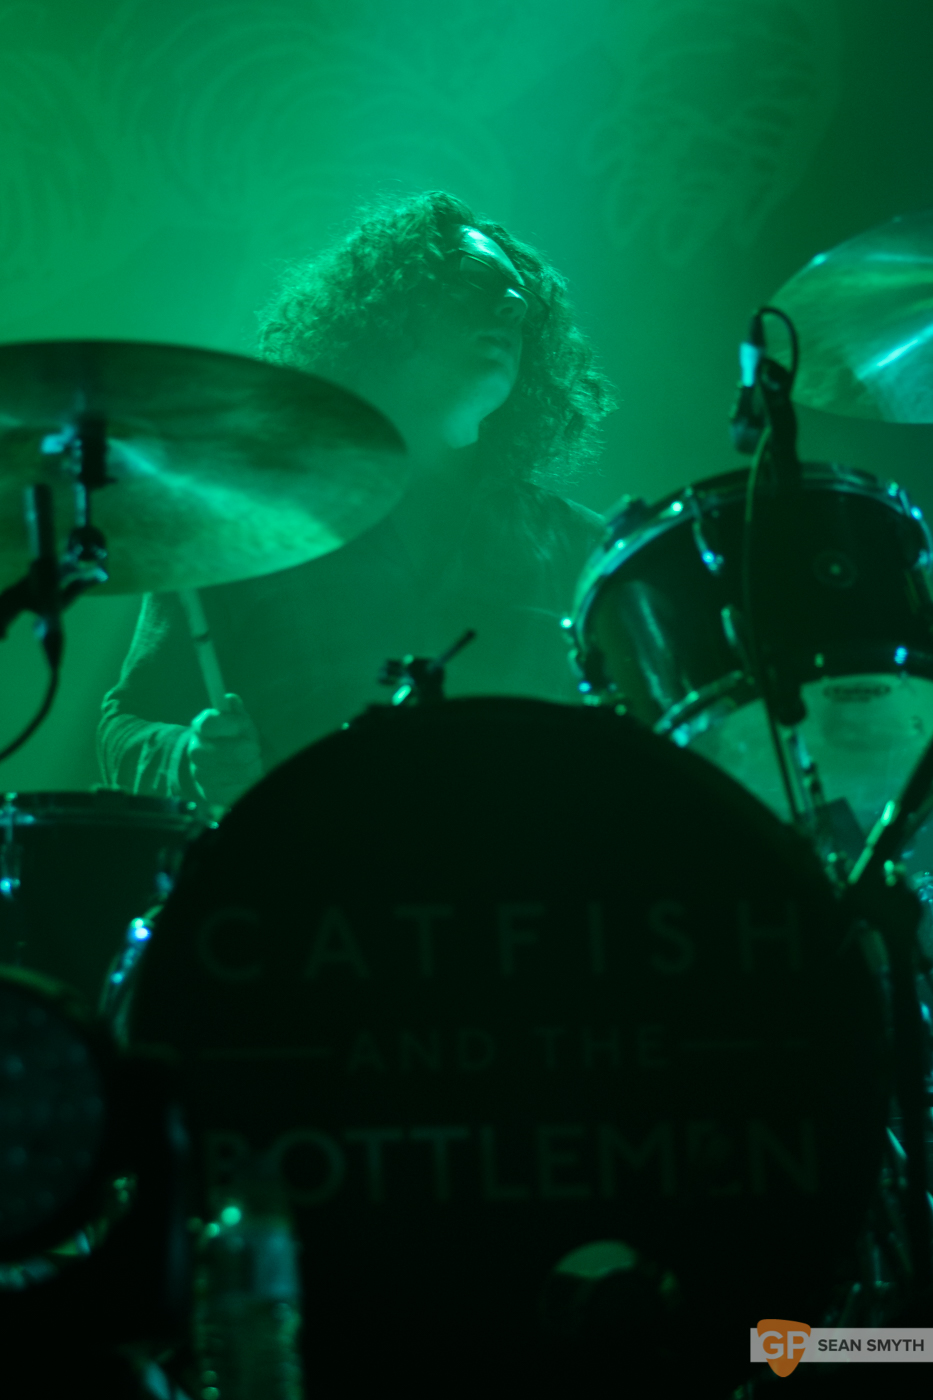 catfish-and-the-bottlemen-at-the-olympia-theatre-by-sean-smyth-20-11-16-19-of-27